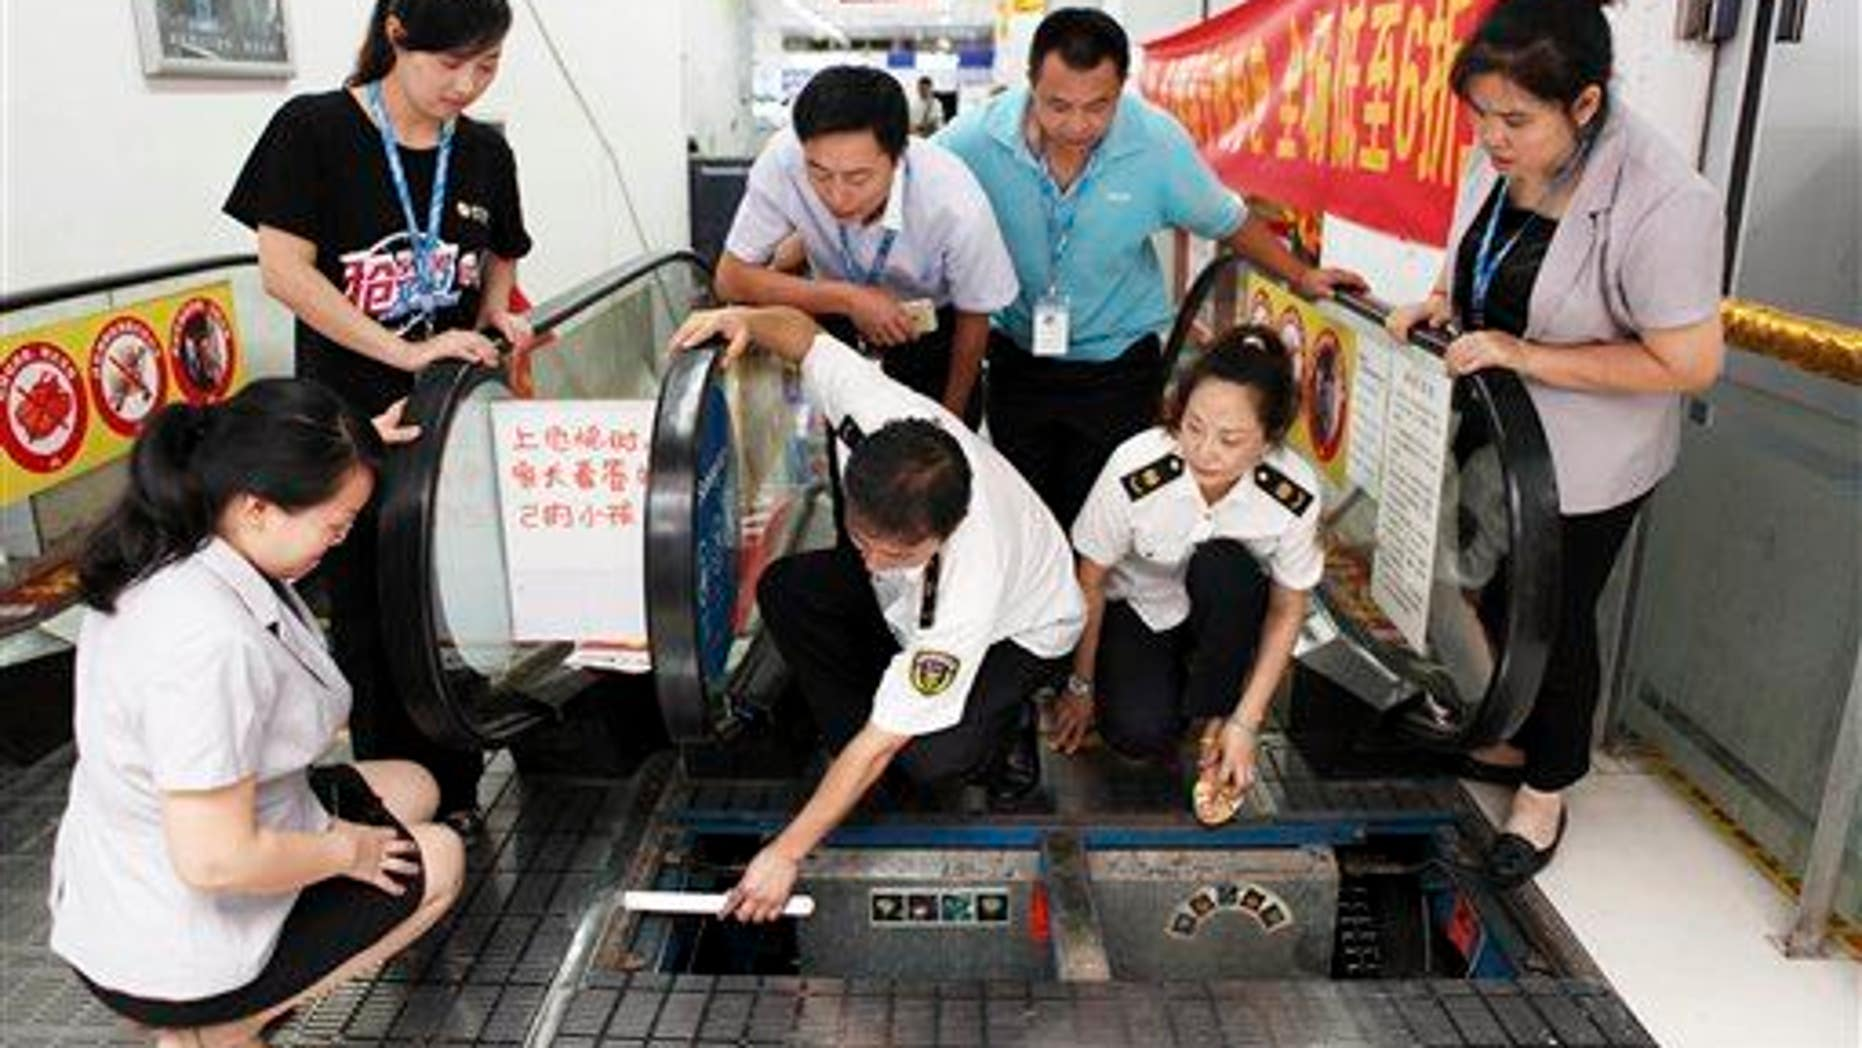 Staff members at an appliance store watch as officials from the local bureau of Quality and Technical Supervision inspect an escalator in Yongchuan district in Chongqing Municipality, July 30, 2015.